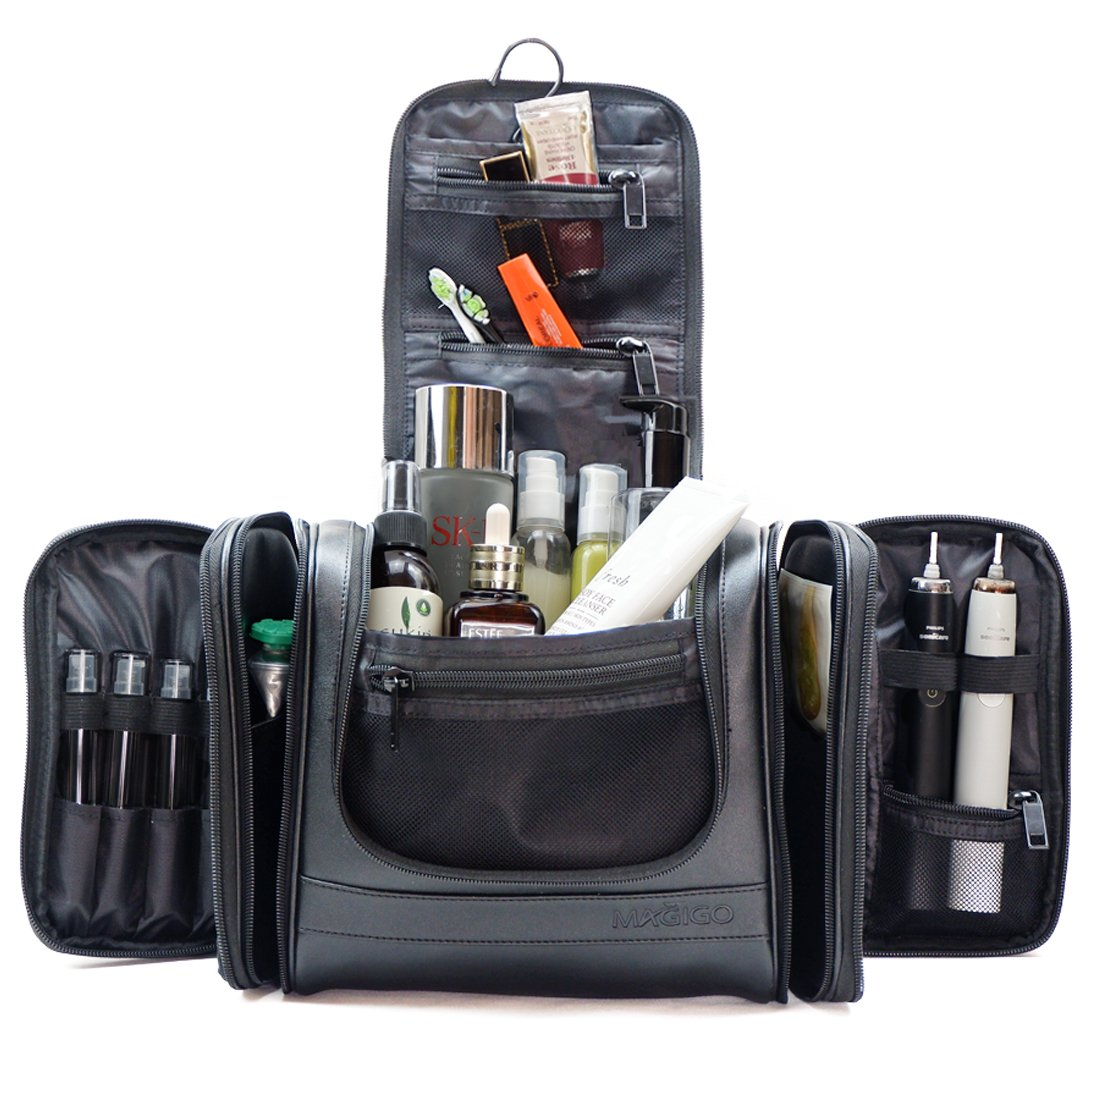 MAGIGO Extra Large PU Leather Hanging Travel Toiletry Bag with Function of Passport Holder and TSA Approved Cosmetic Kits for Men (Black)